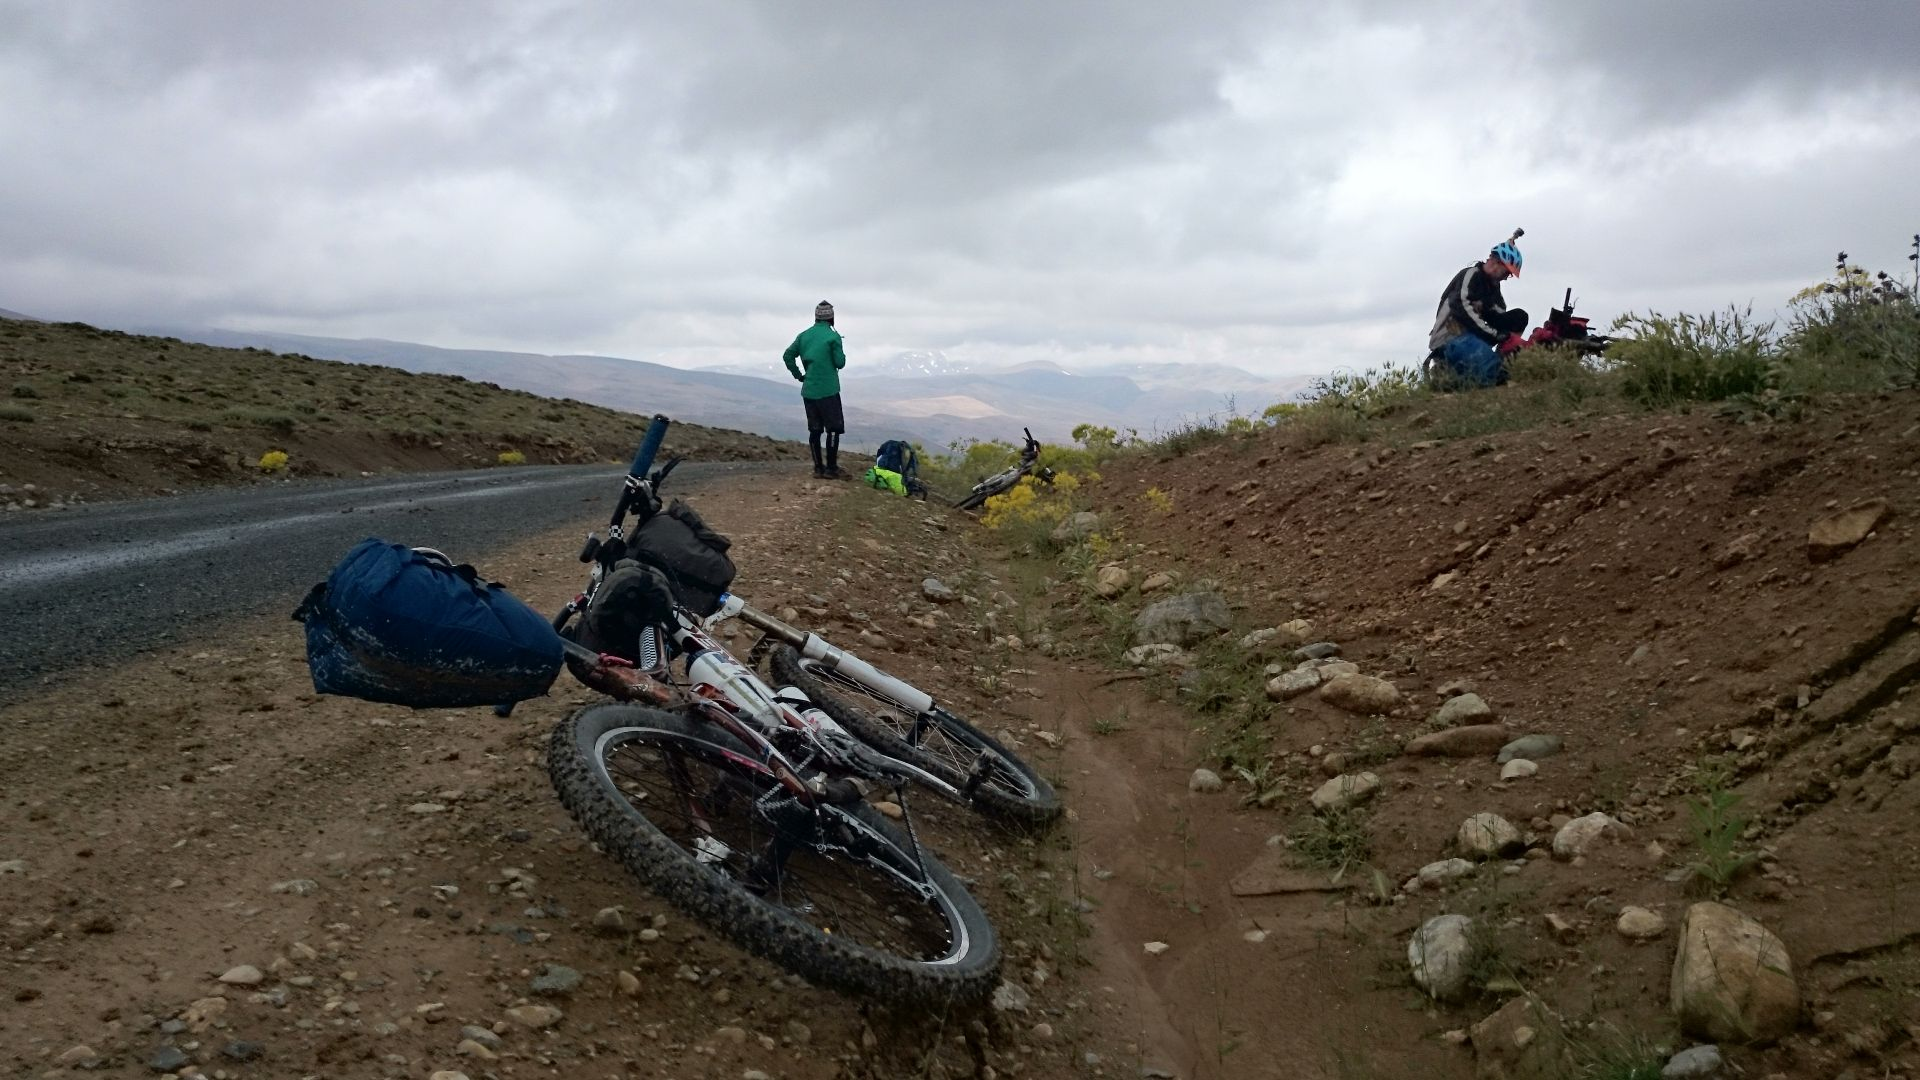 Day 1 - Pit stop under a brooding sky. Just beyond Tasraft village.  © Shaun Grey